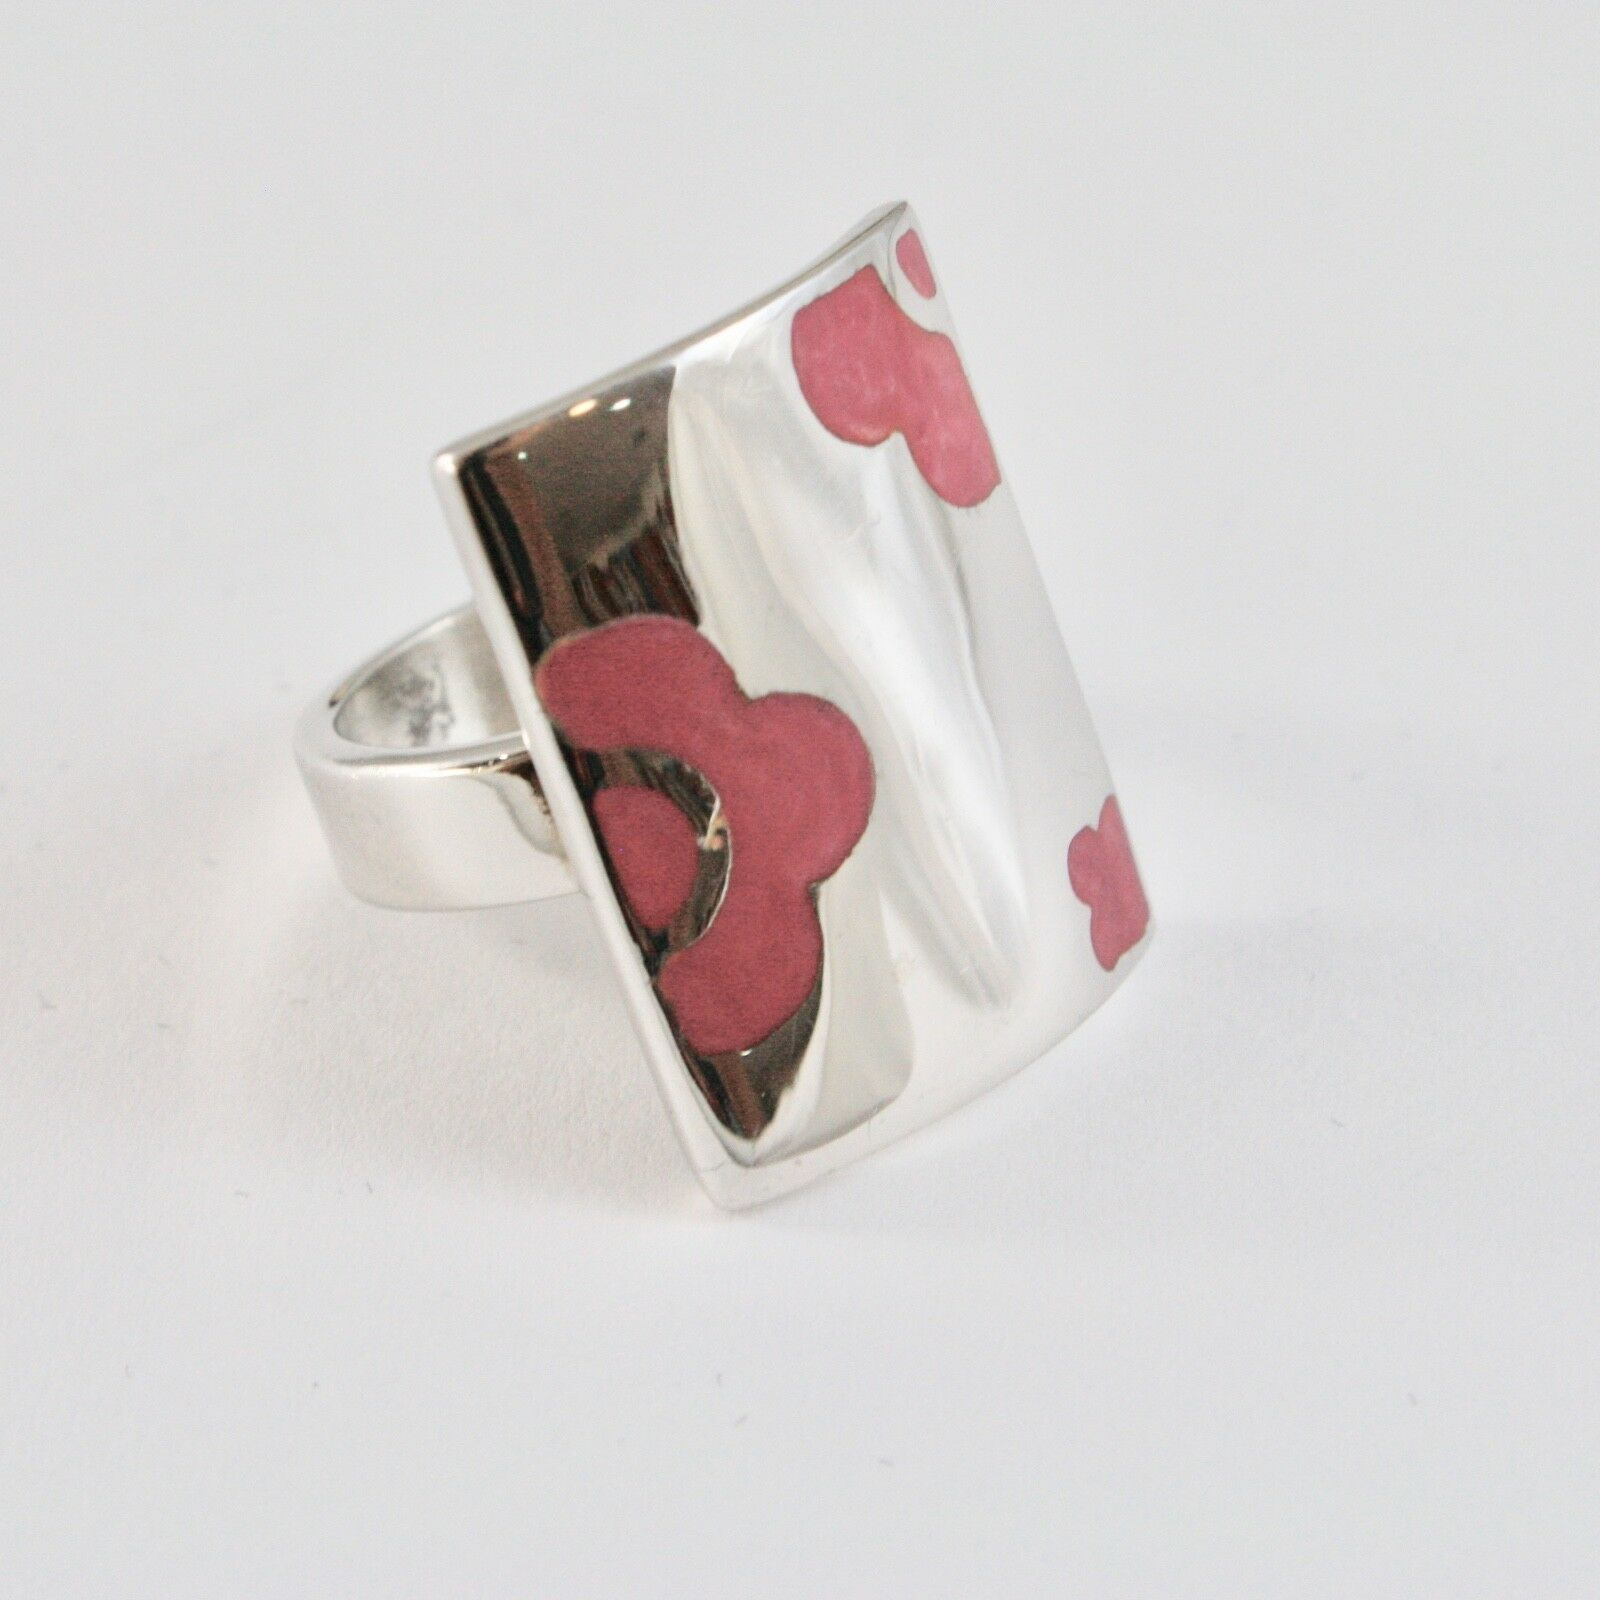 Ring Band Silver 925 Rhodium with Enamel Pink Shaped Flowers